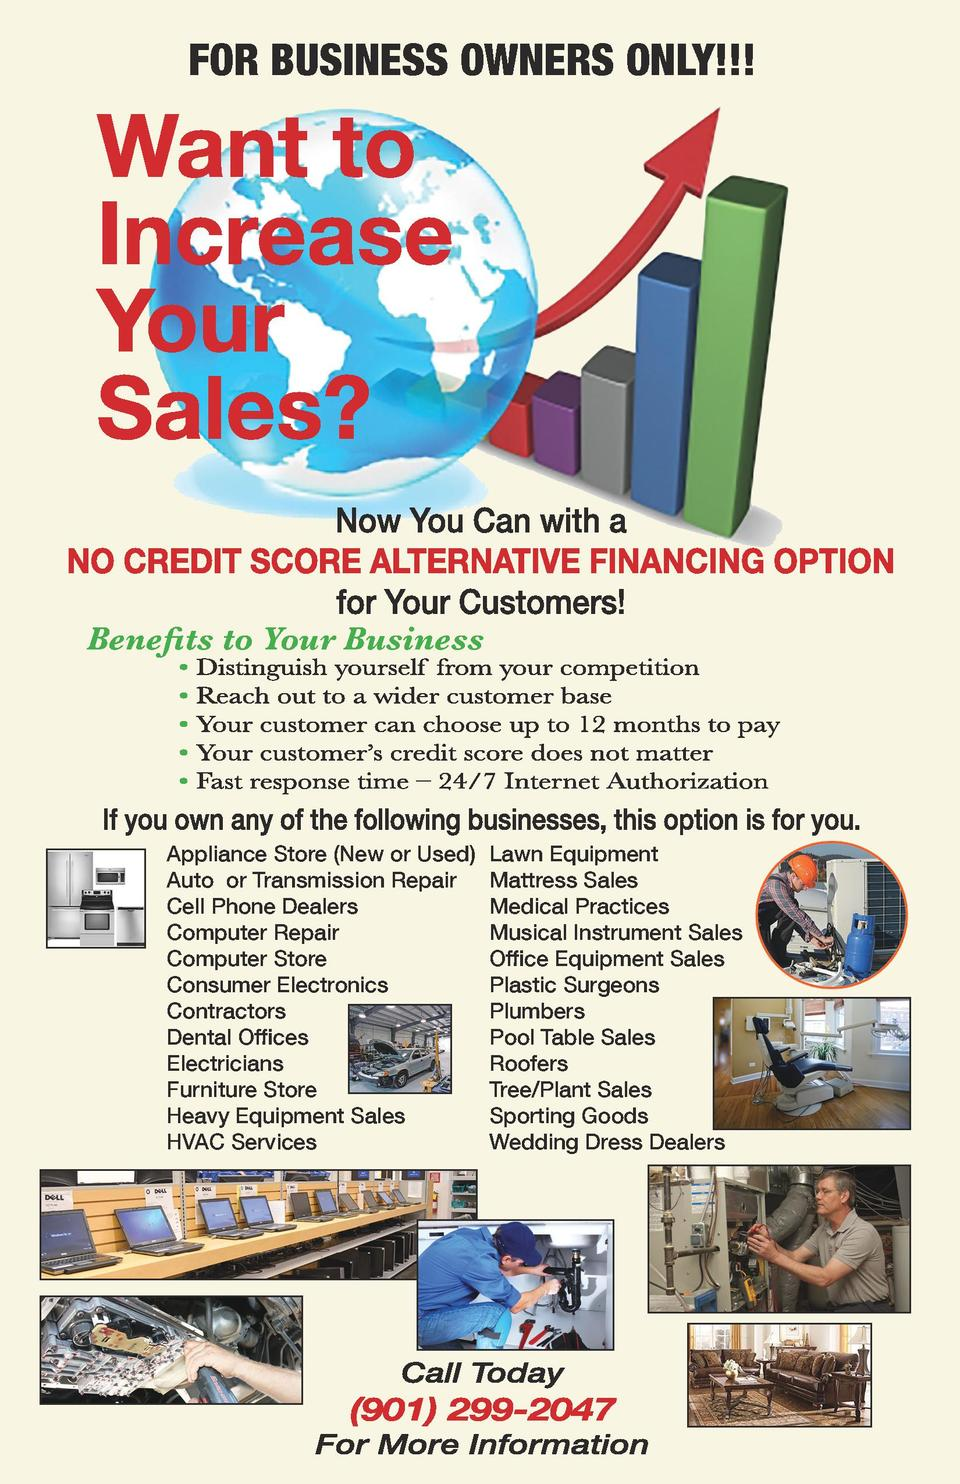 FOR BUSINESS OWNERS ONLY     Benefits to Your Business  Appliance Store  New or Used  Auto or Transmission Repair Cell Pho...